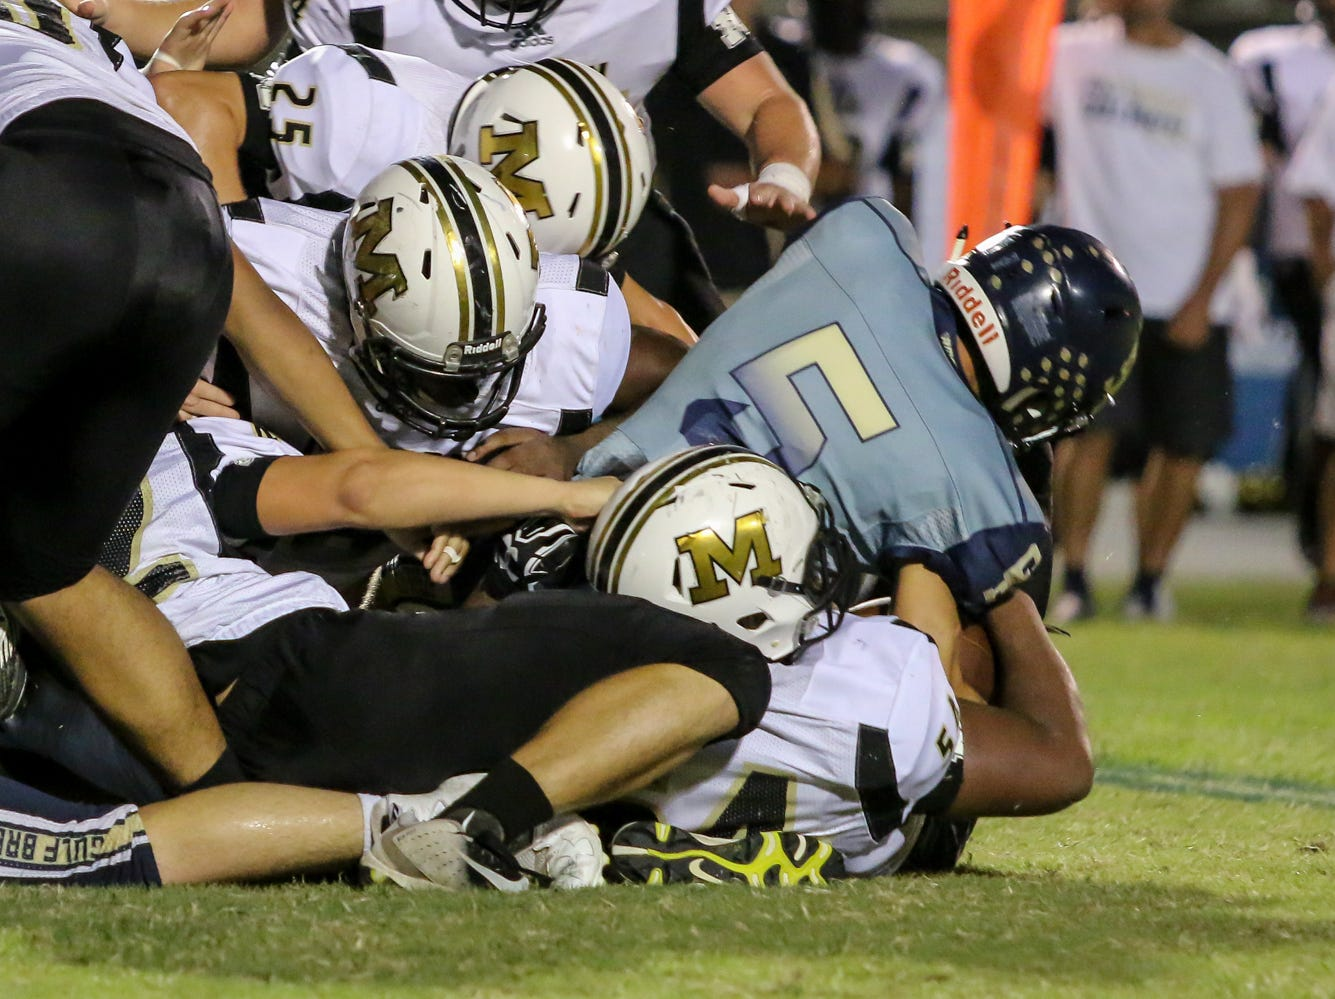 Gulf Breeze starting quarterback Dylon Kelley (5) gets injured on this play against Milton after being twisted up on the tackle in the District 2-6A game at Gulf Breeze High School on Friday.